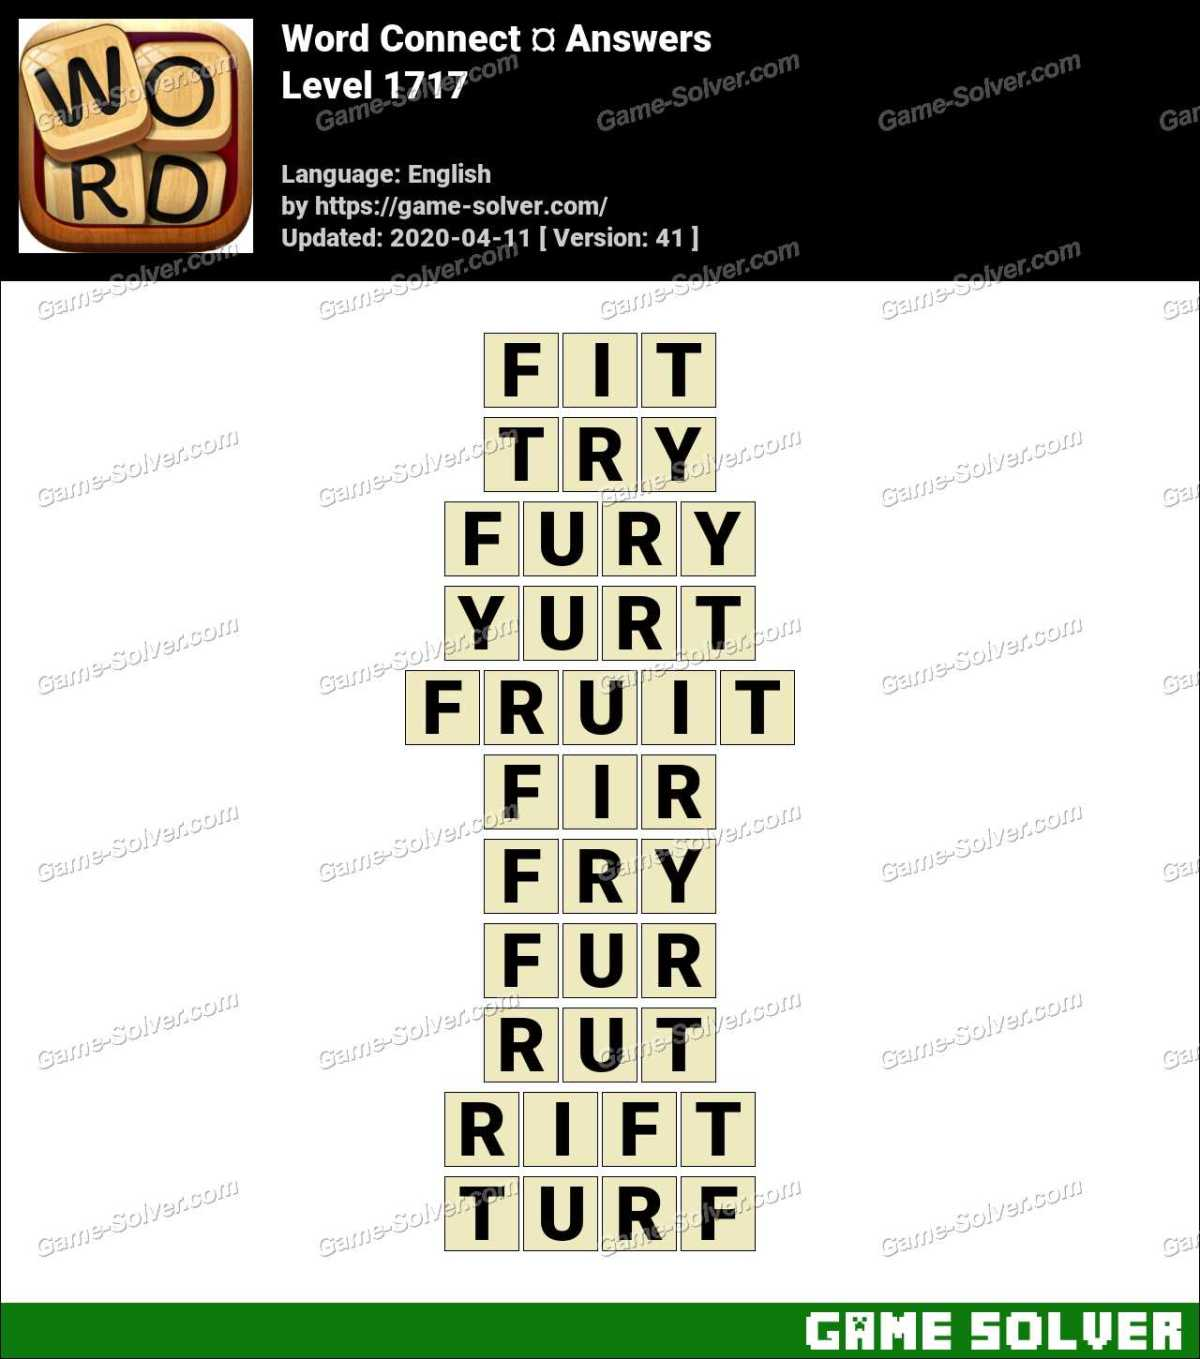 Word Connect Level 1717 Answers